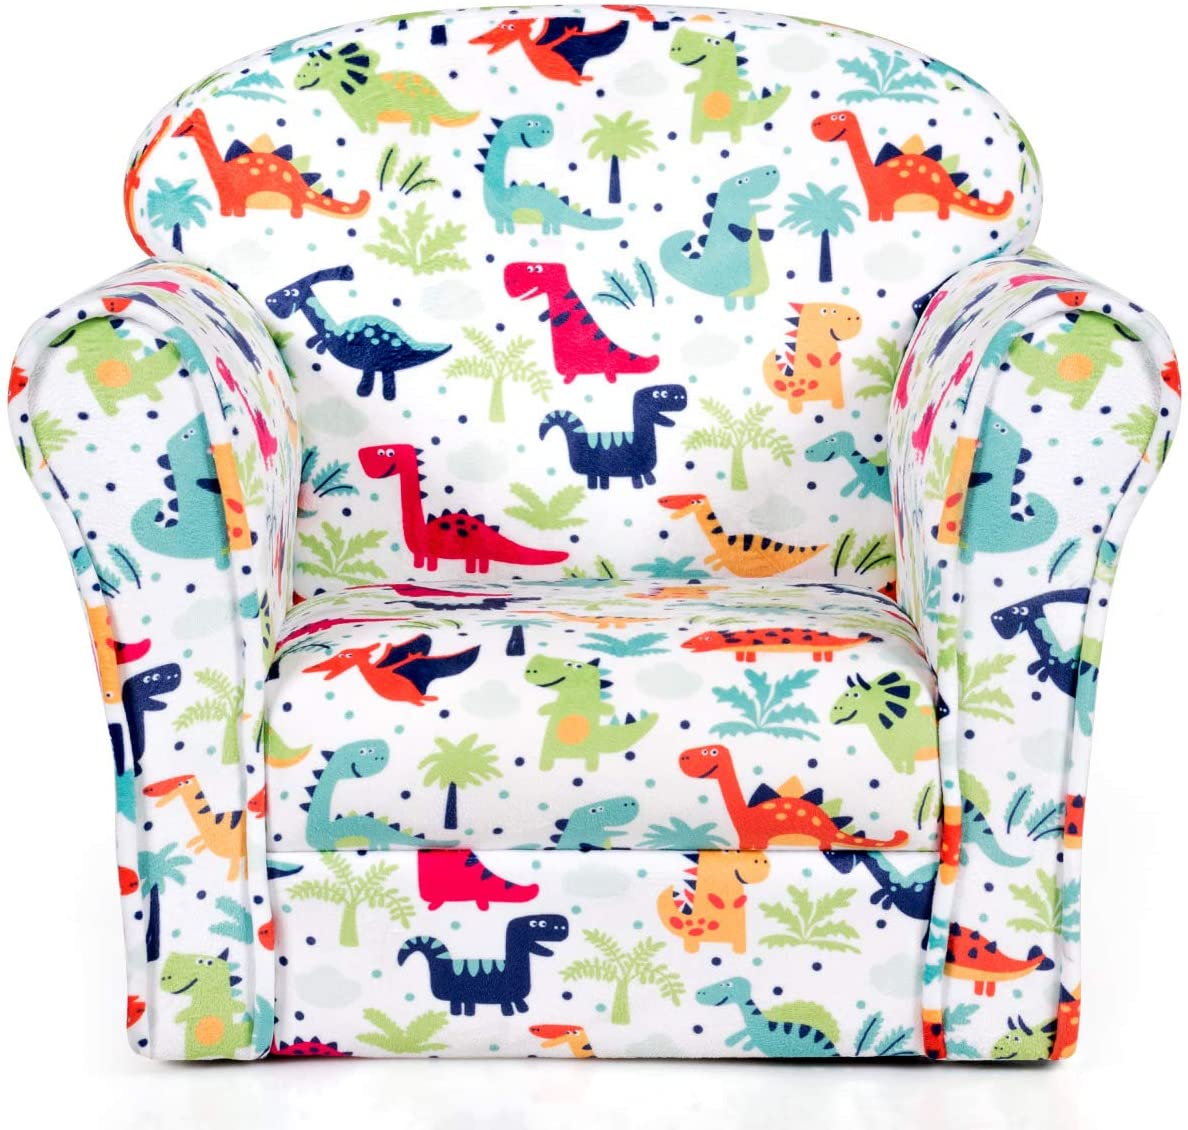 Costzon Kids Sofa, Children Armrest Chair with Pattern, Toddler Furniture  w/Sturdy Wood Construction for Boys & Girls, Armrest Couch for Preschool